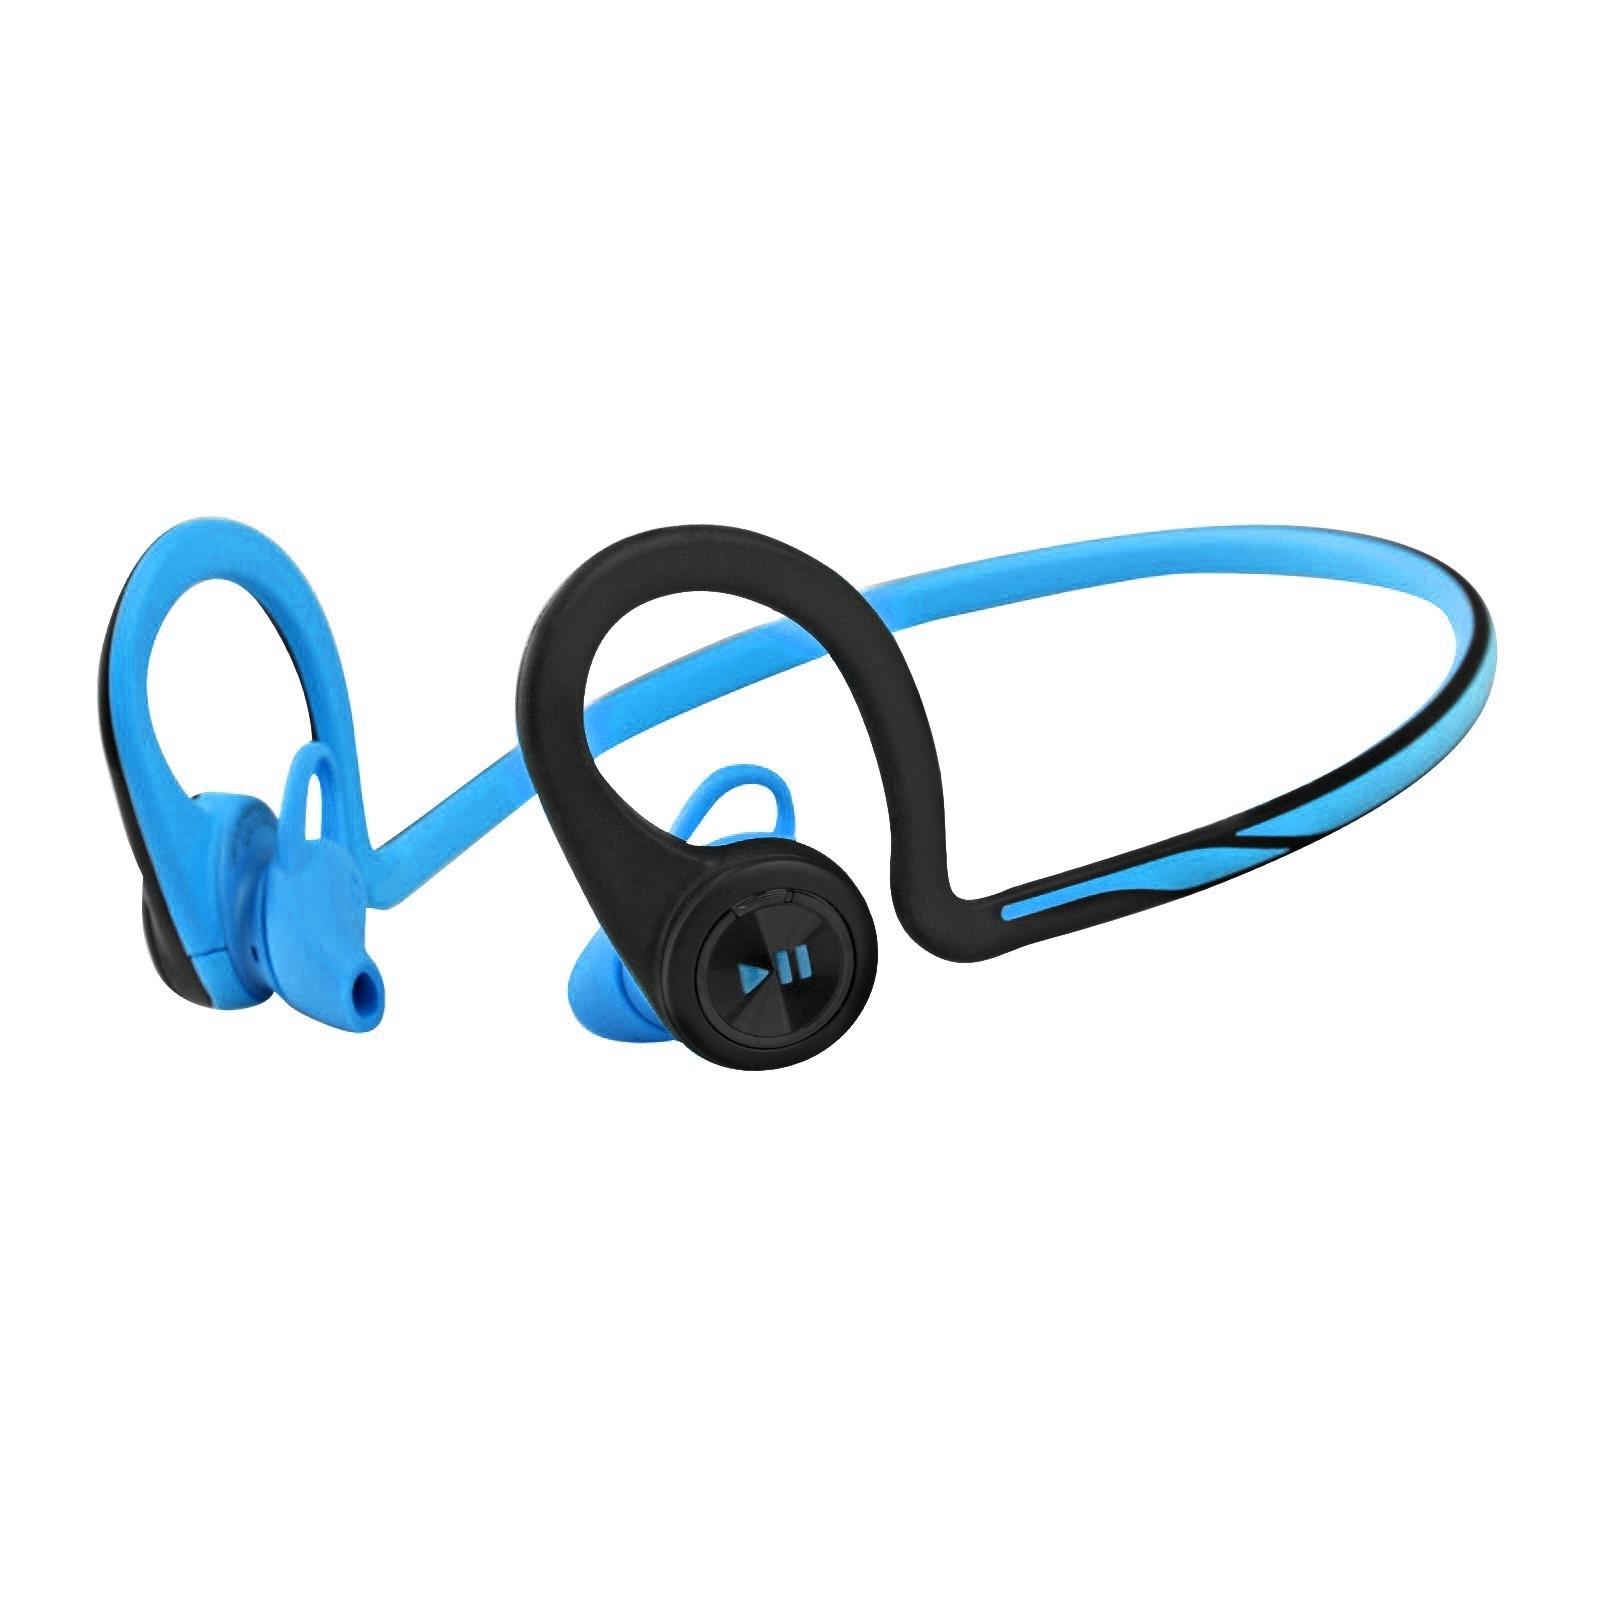 Wiring Diagram For Gaming Headset Free You Karaoke Machine Plantronics Backbeat Fit 305 Wireless In Ear Headphones 35 With Mic Connector